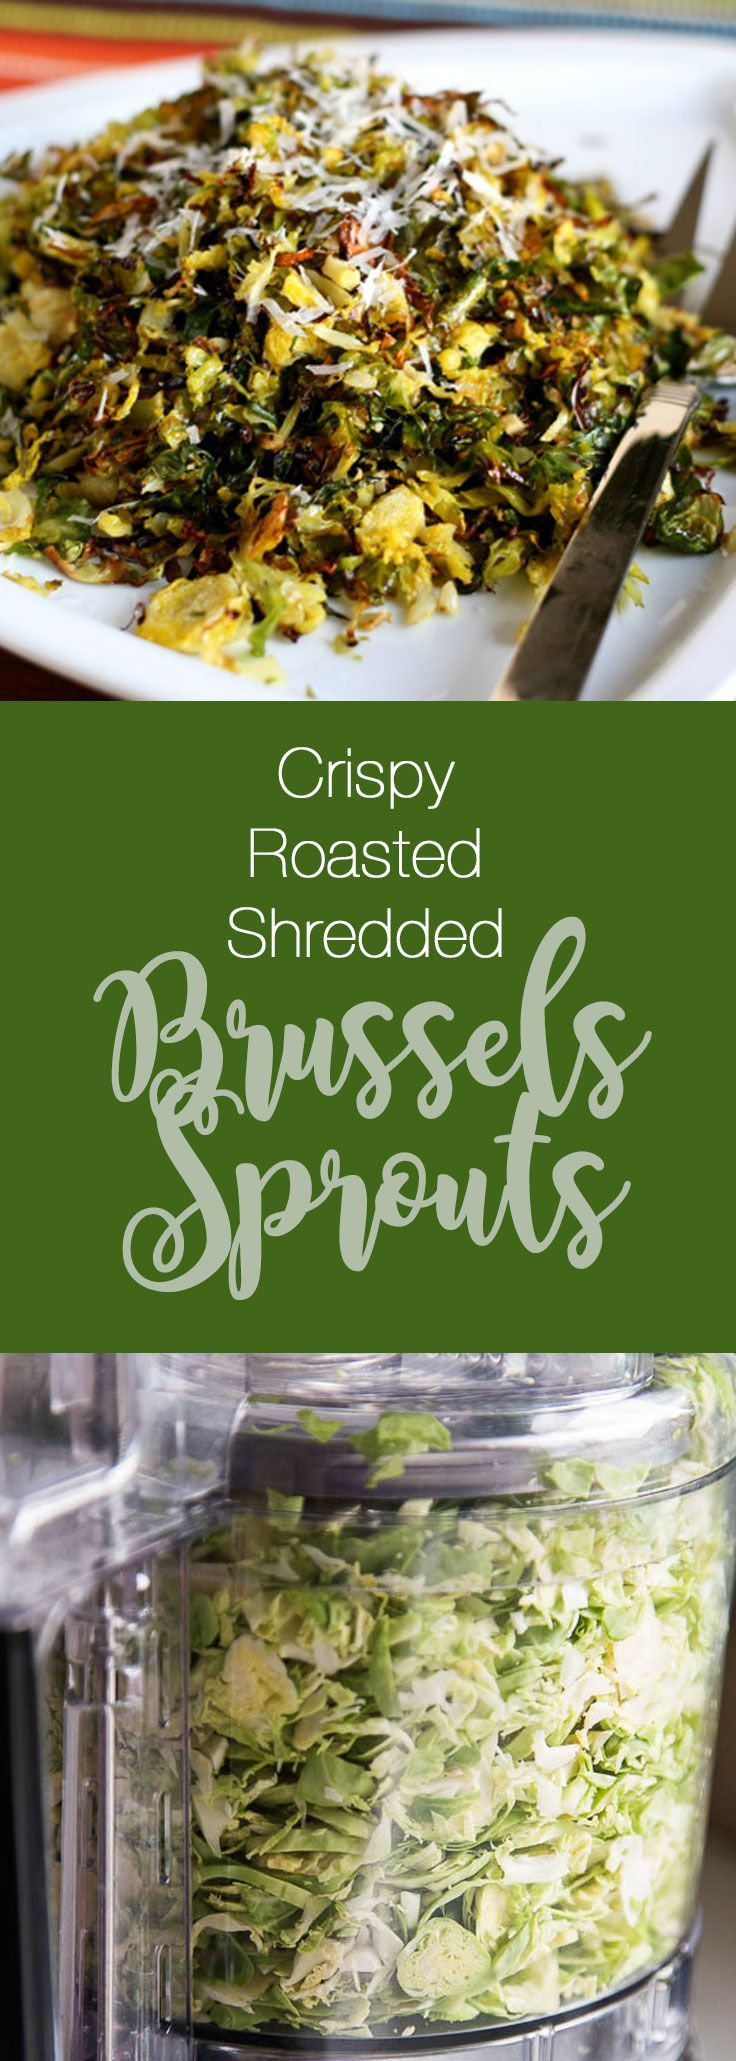 Crispy Roasted Shredded Brussels Sprouts | paleo recipes | side dish recipes | brussels sprouts recipes | perrysplate.com